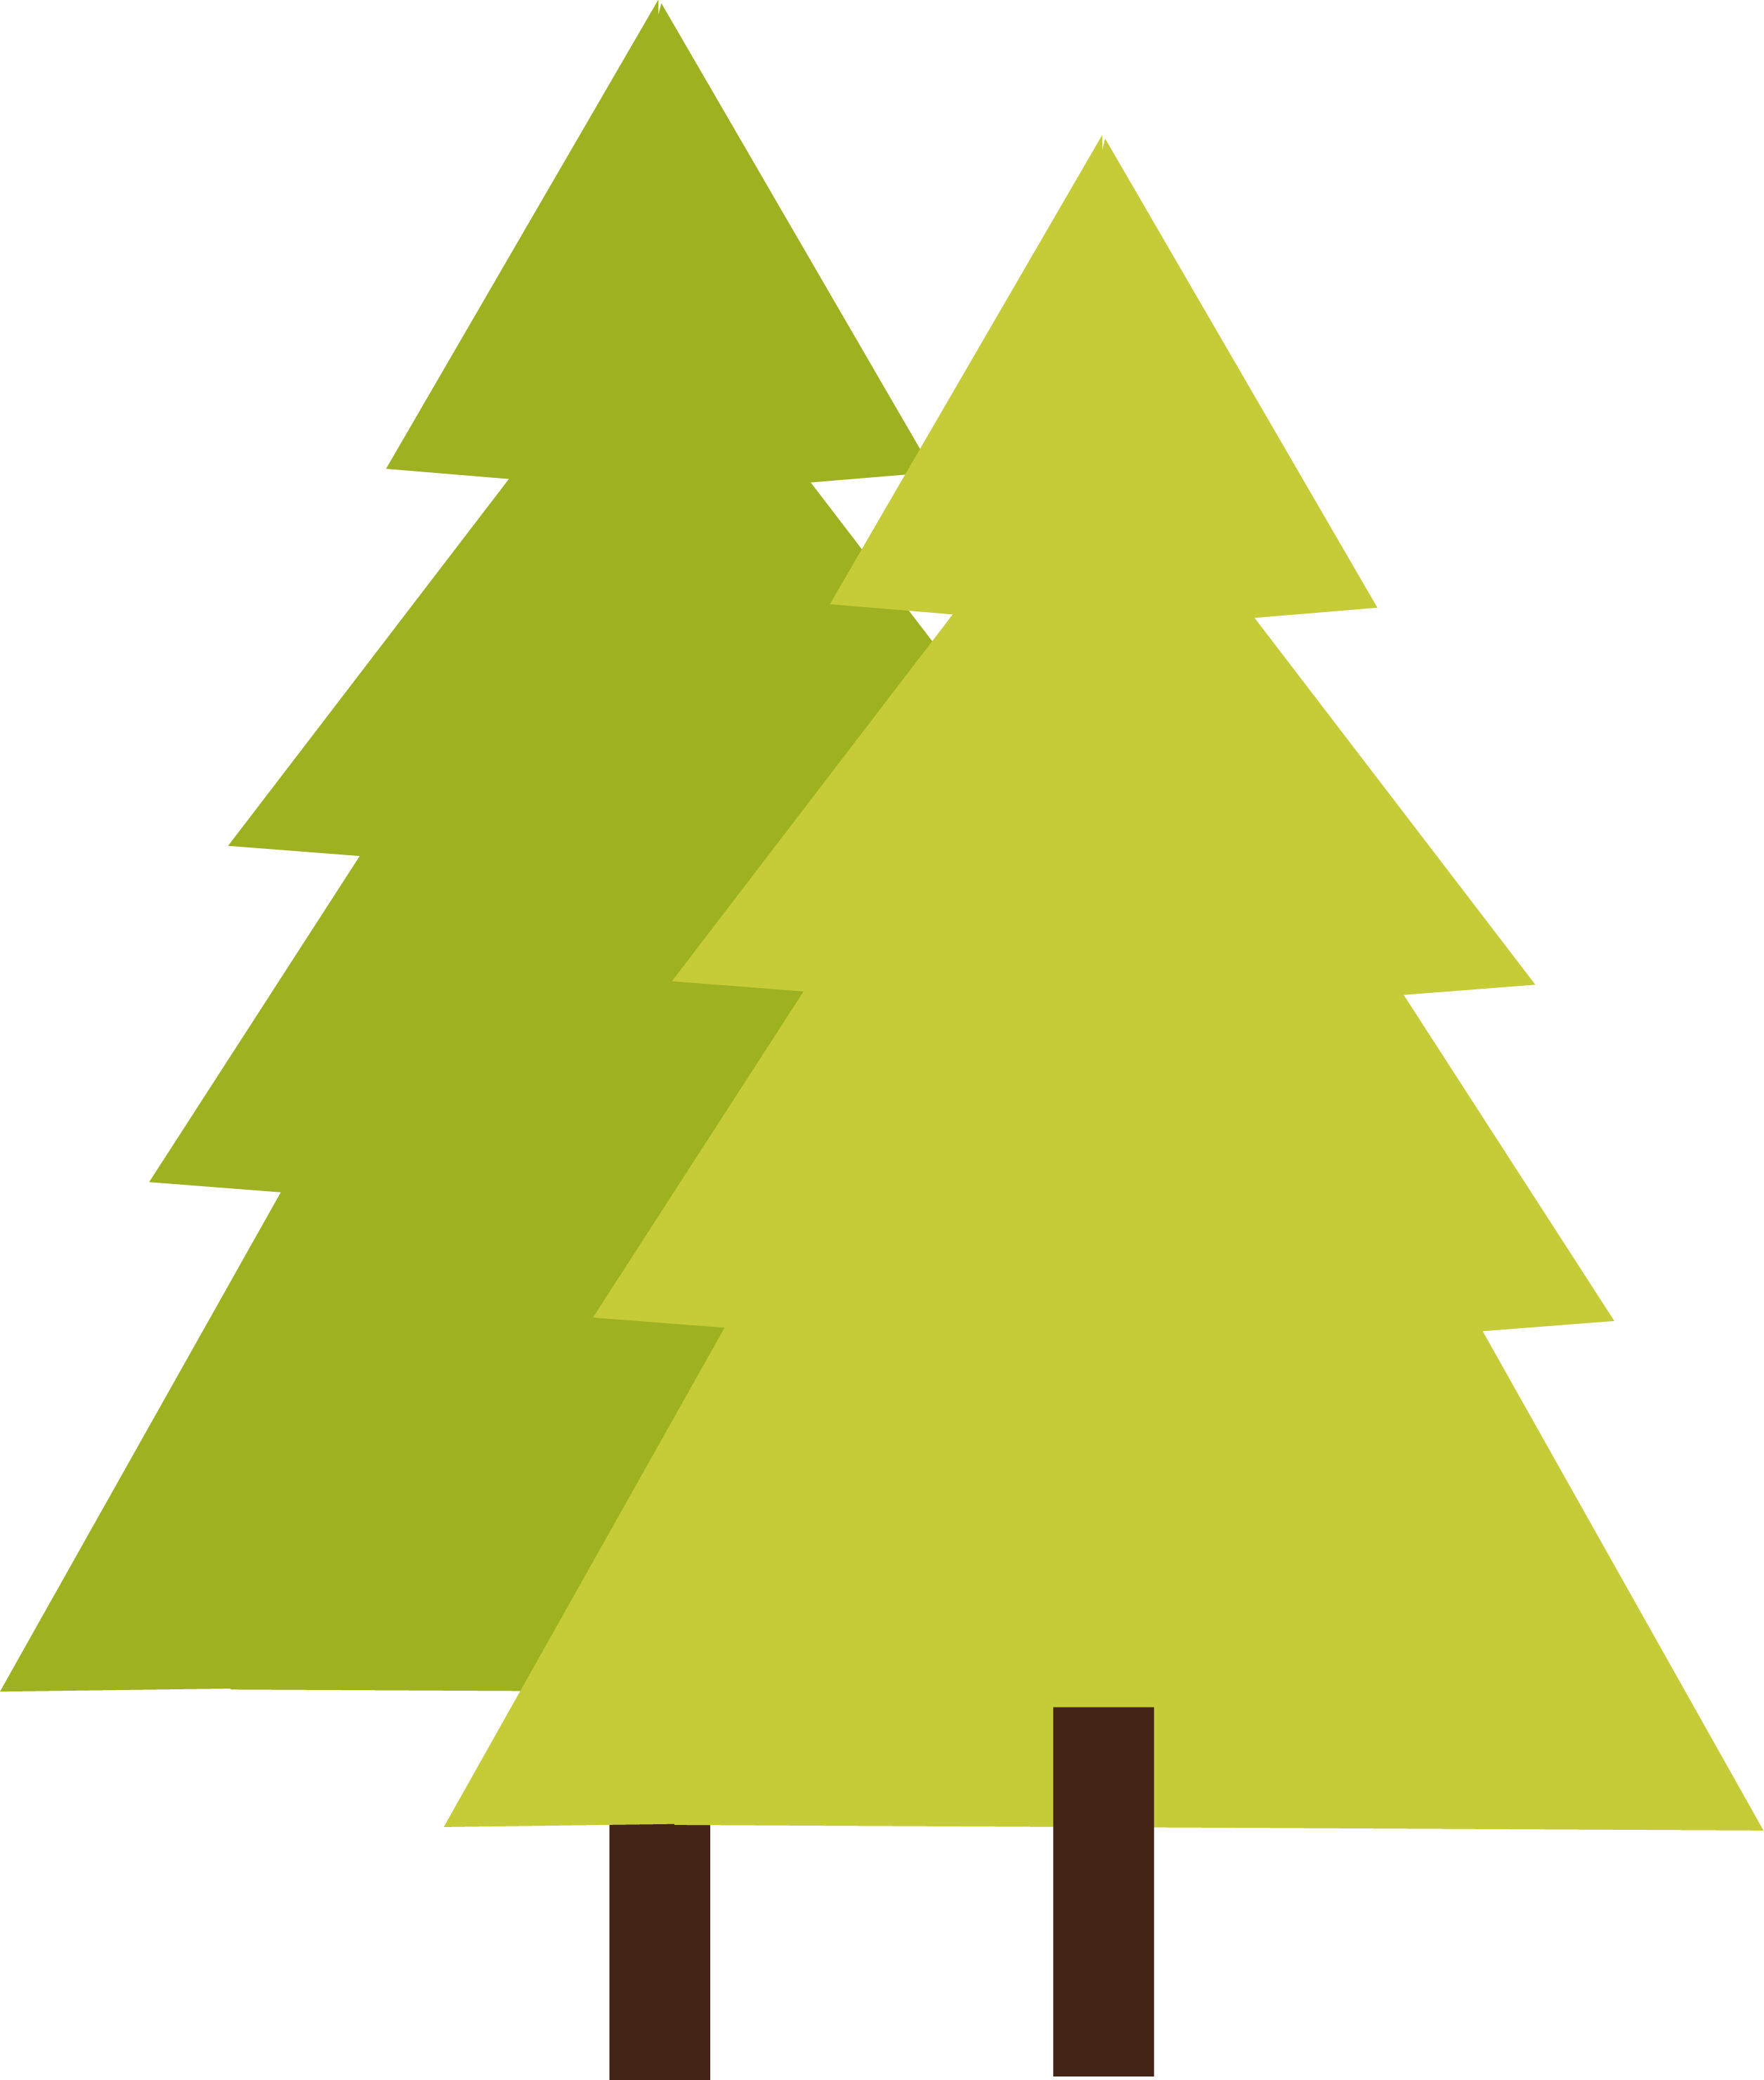 2511x2960 Tree Png Images Quality Transparent Pictures Png Only